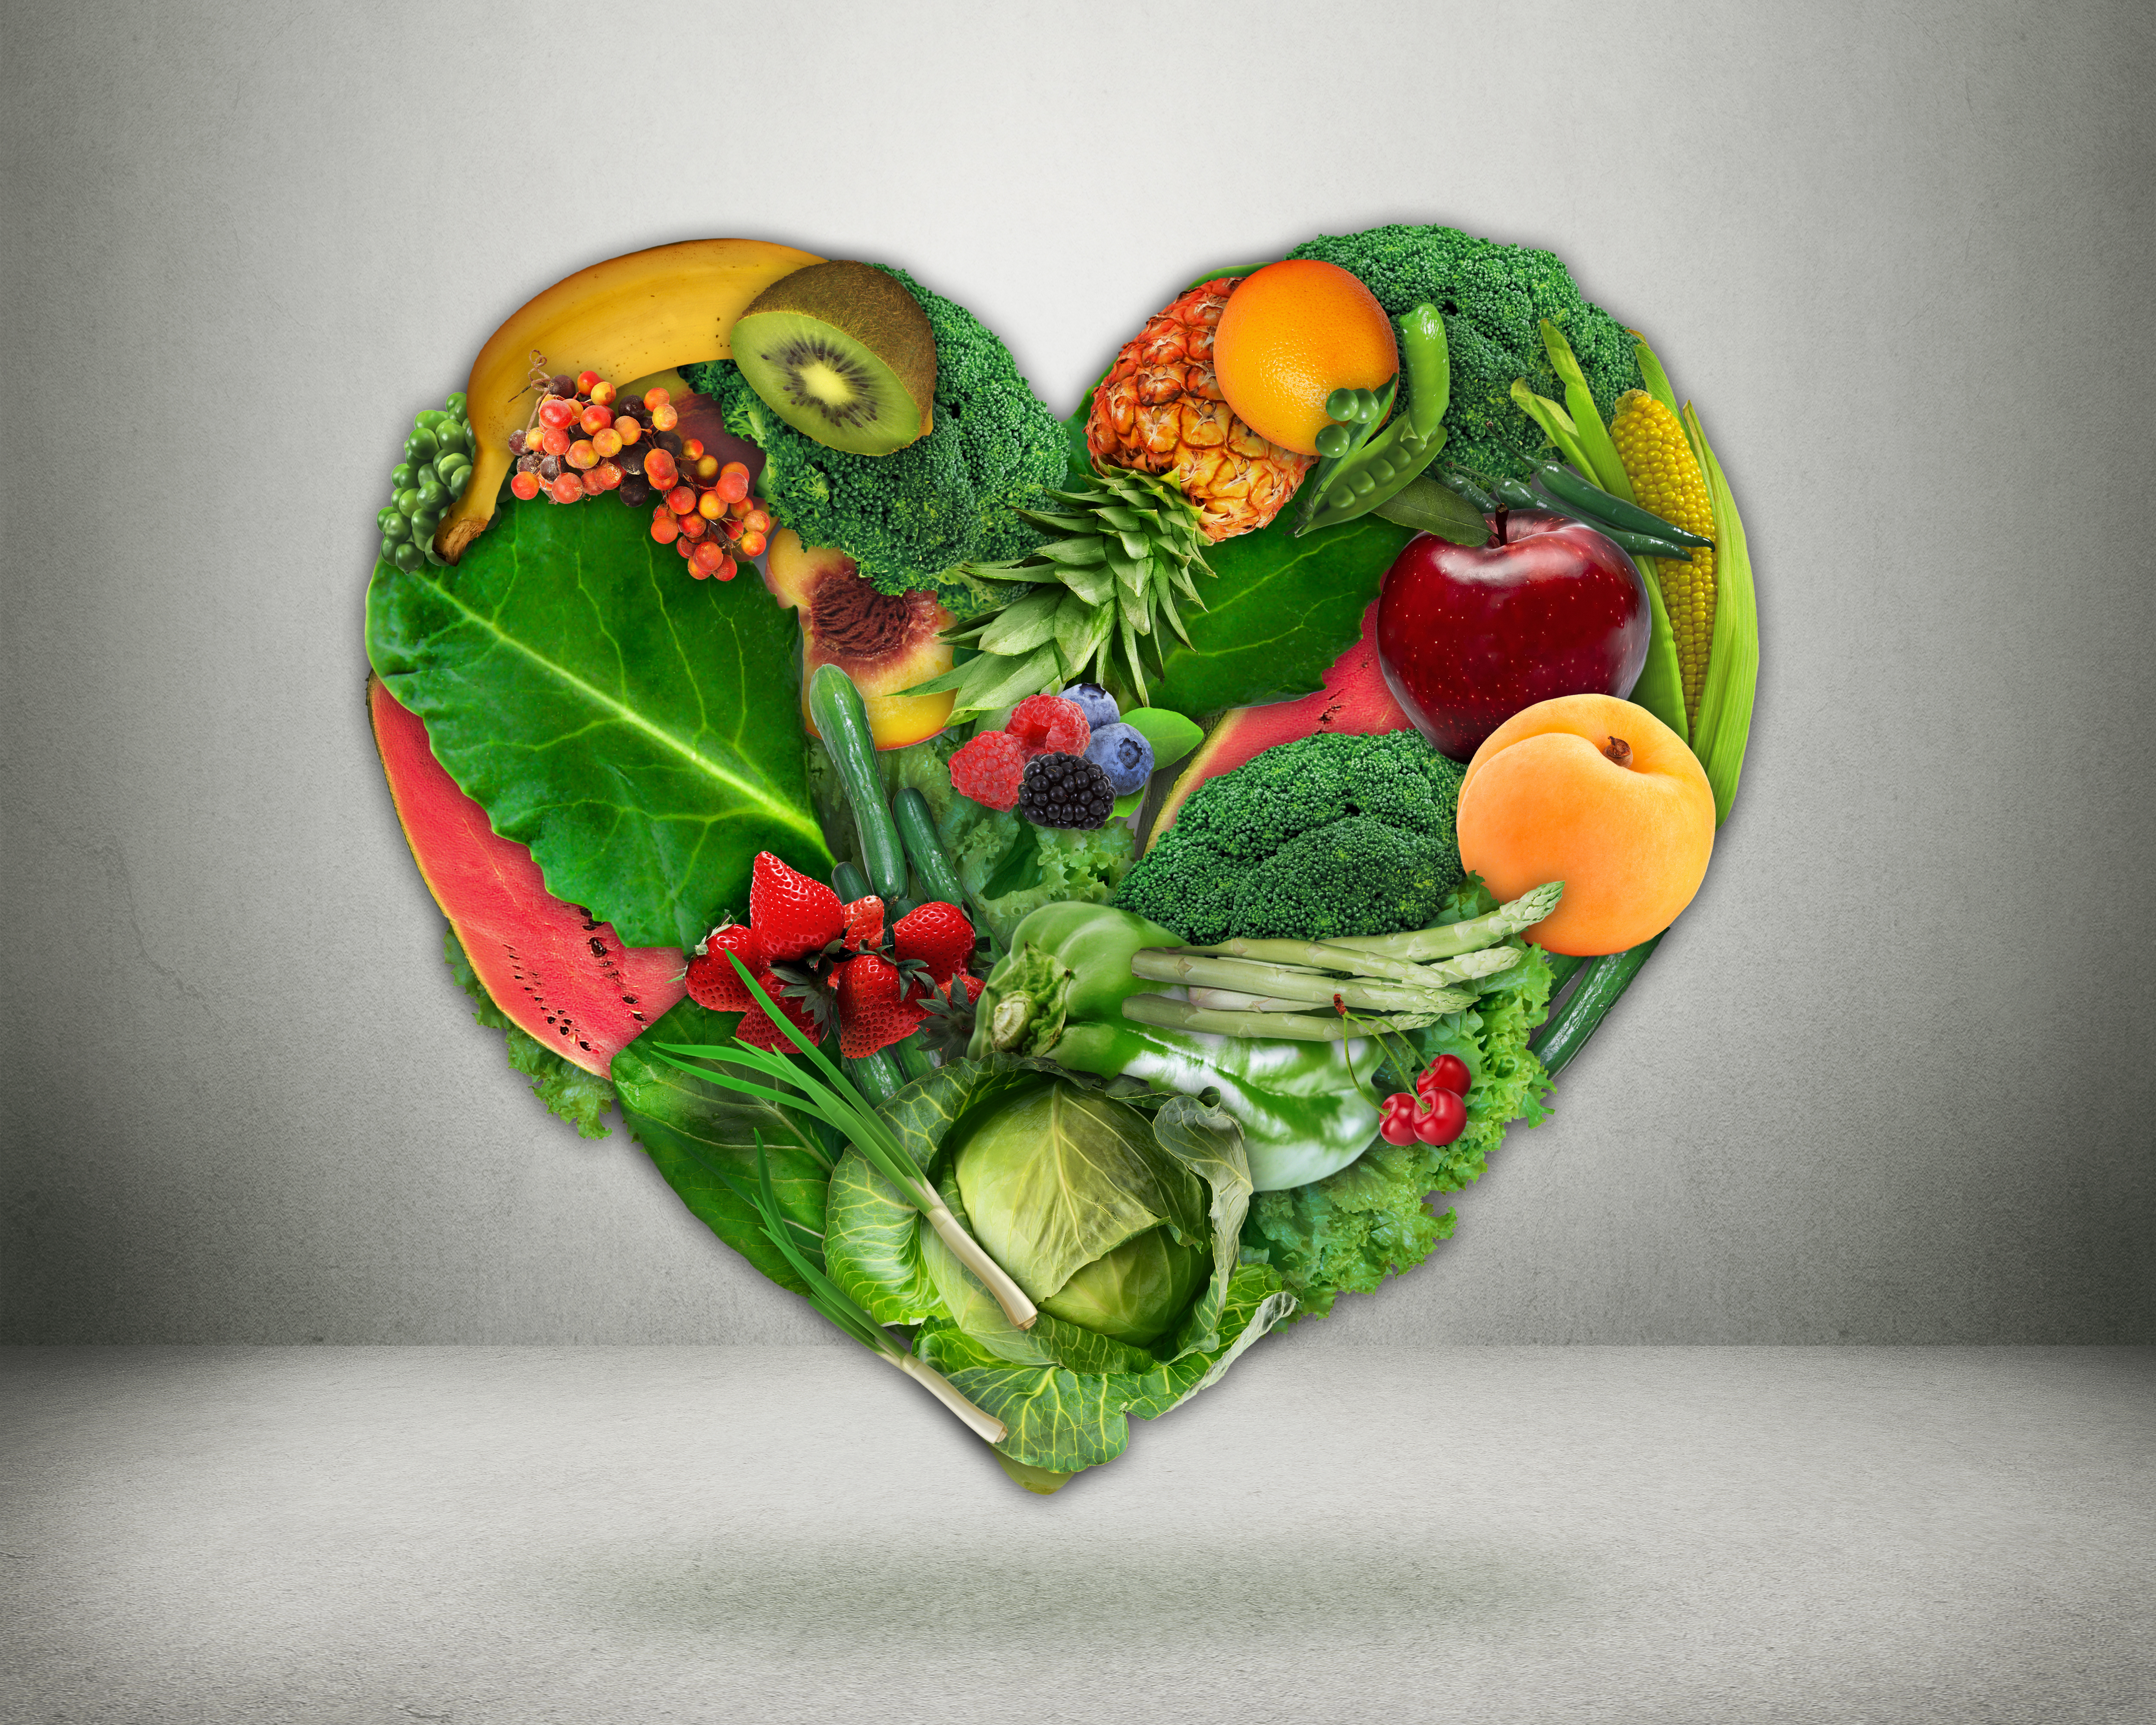 will dash diet help control afib?